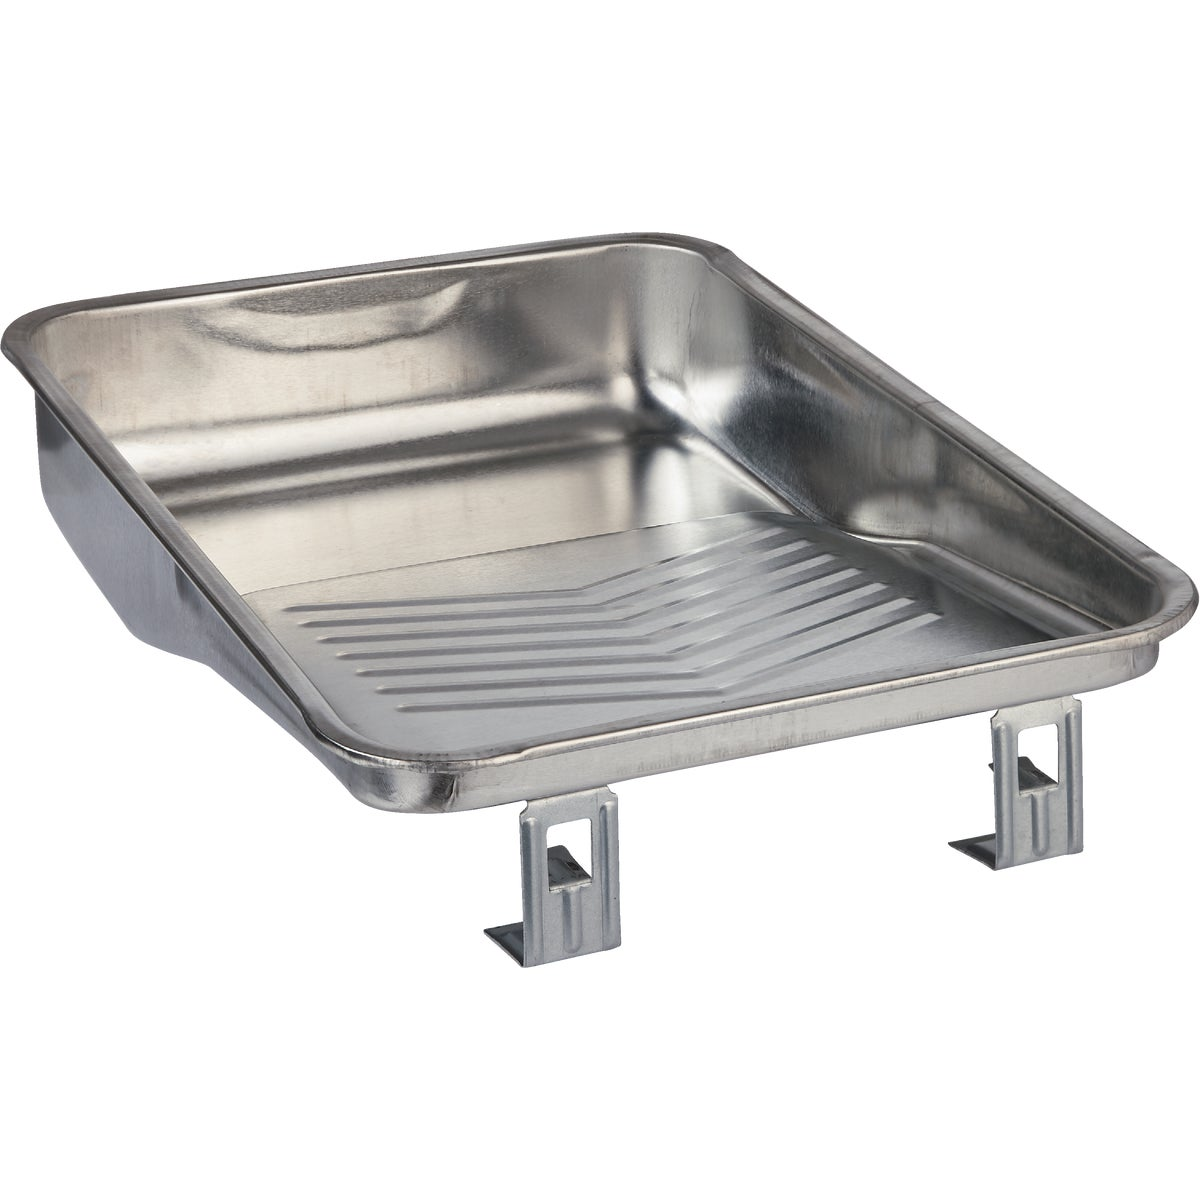 "9"" DEEPWELL METAL TRAY - 1891653 by Shur Line"